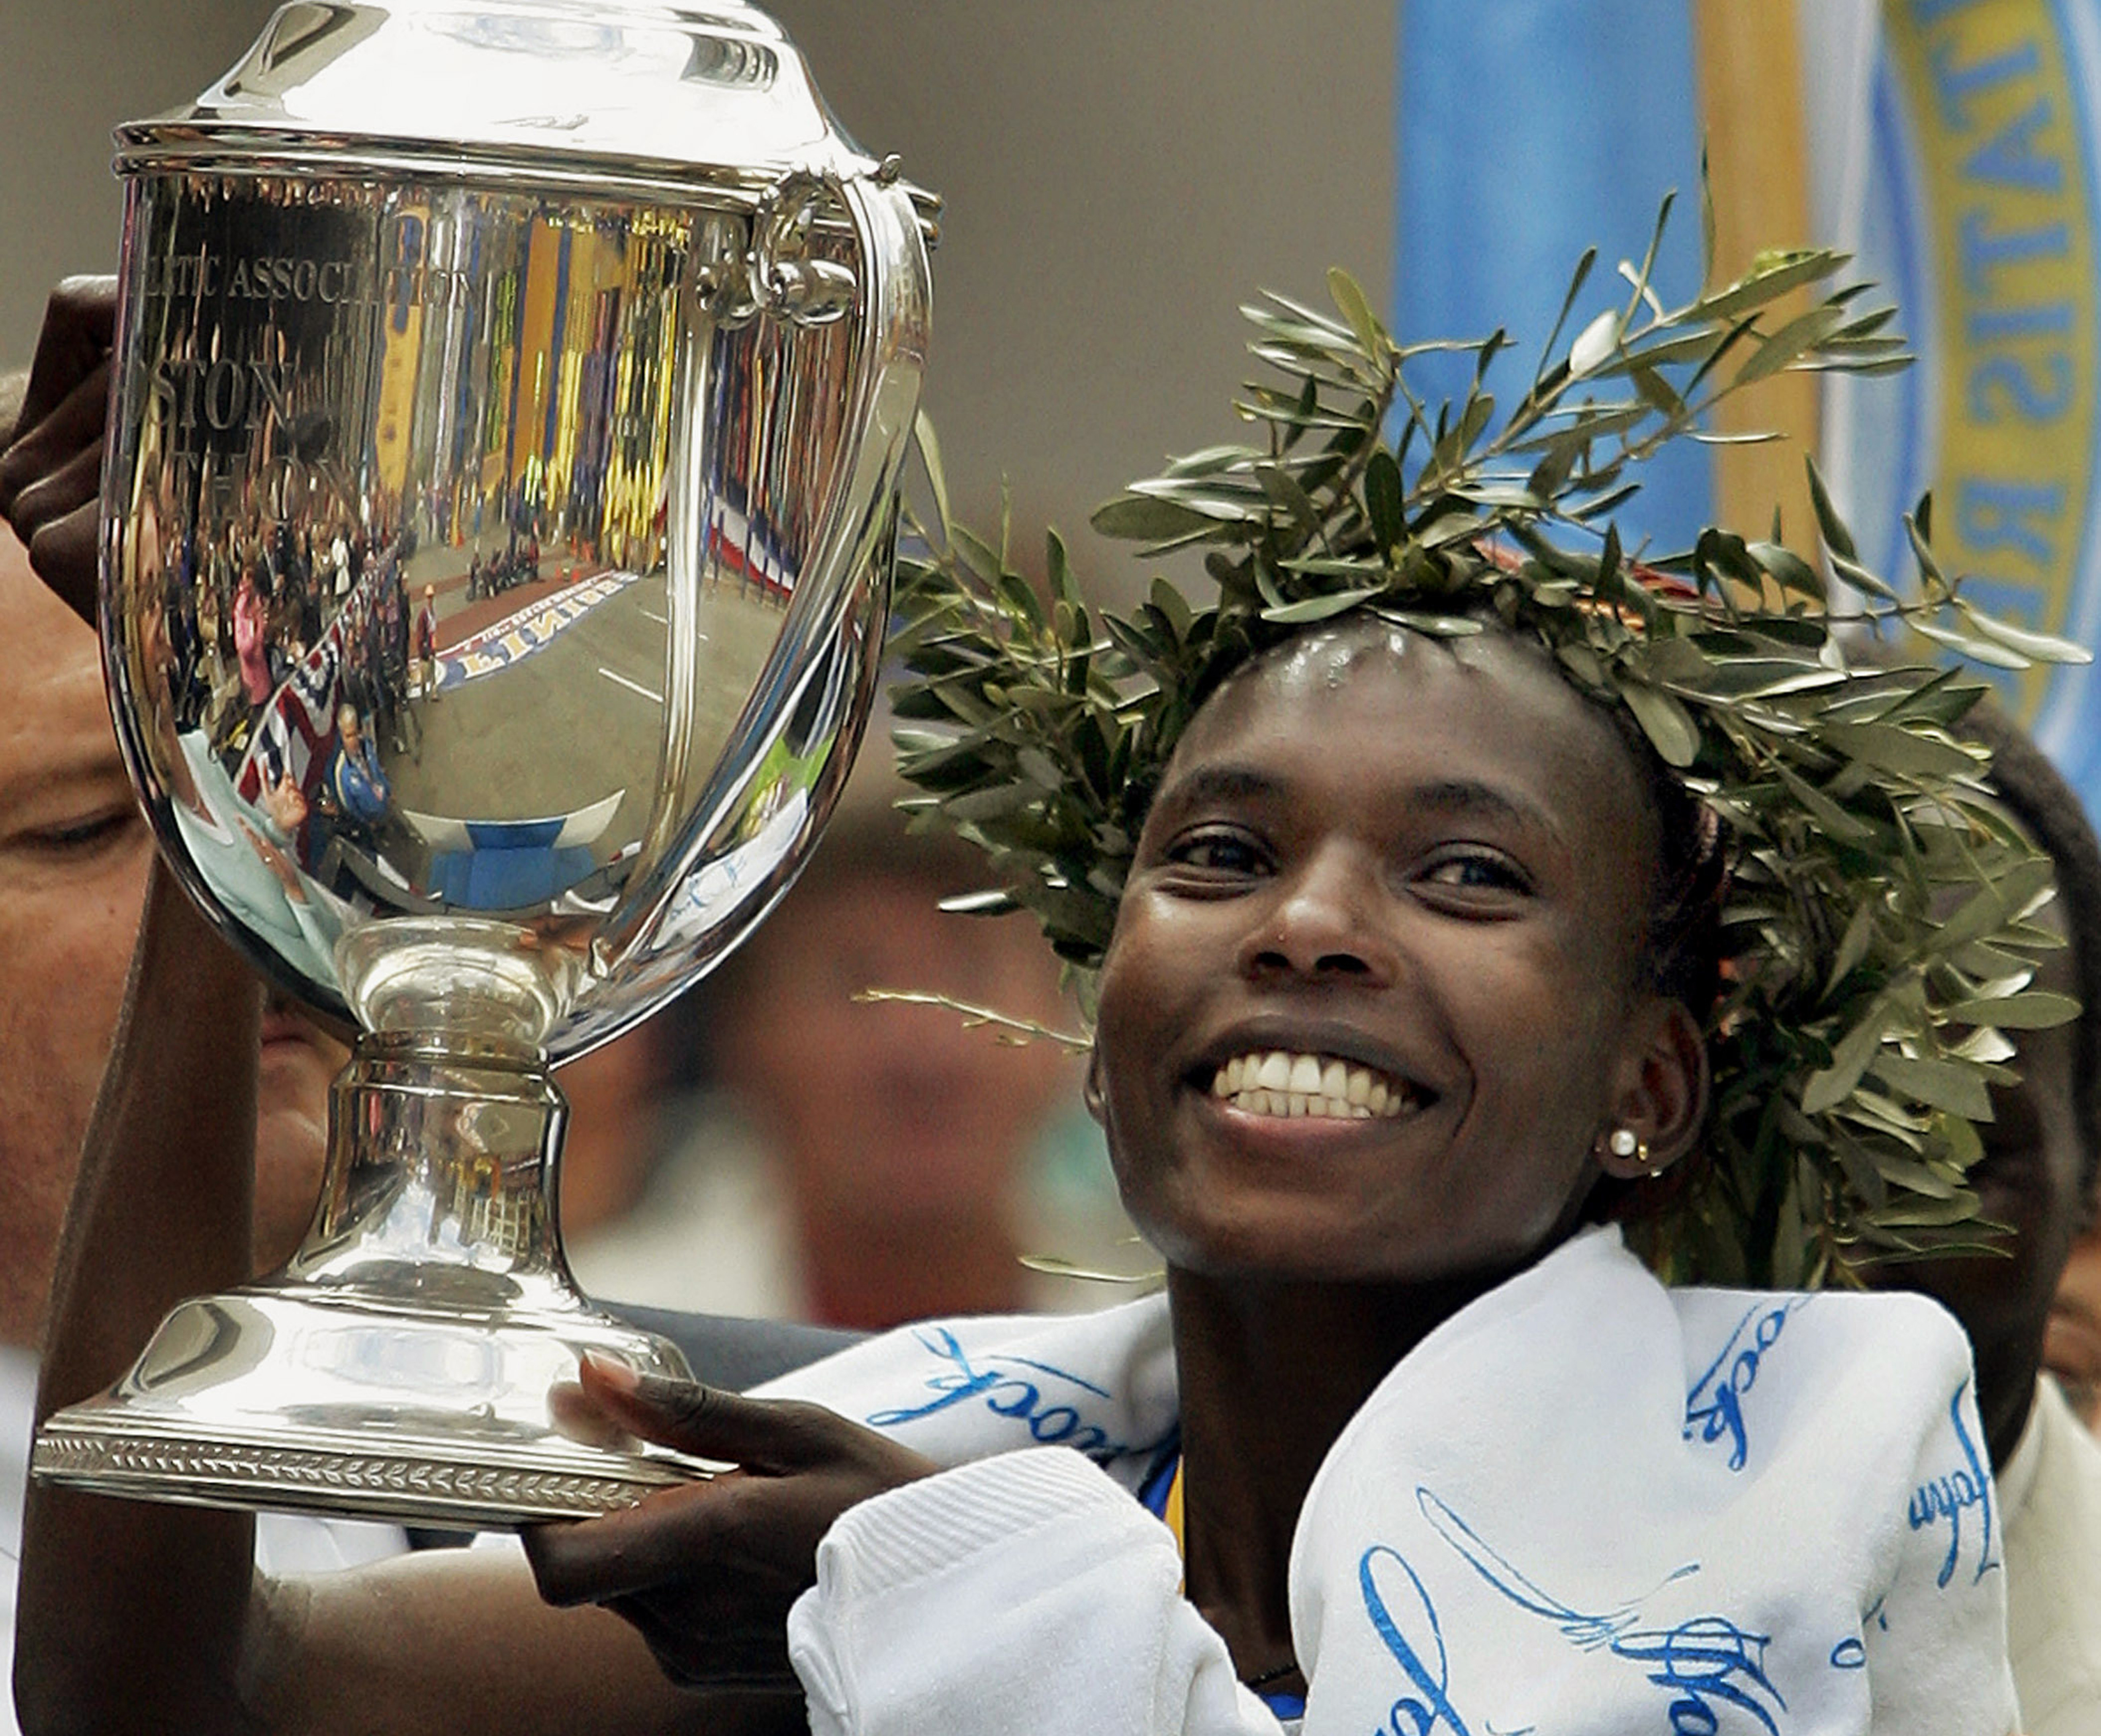 FILE - In this Monday, April 17, 2006, file photo Rita Jeptoo of Kenya holds the trophy after winning the women's division of the 110th running of the Boston Marathon, in Boston. Kenyan police investigating doping searched the hotel rooms of two Italian a